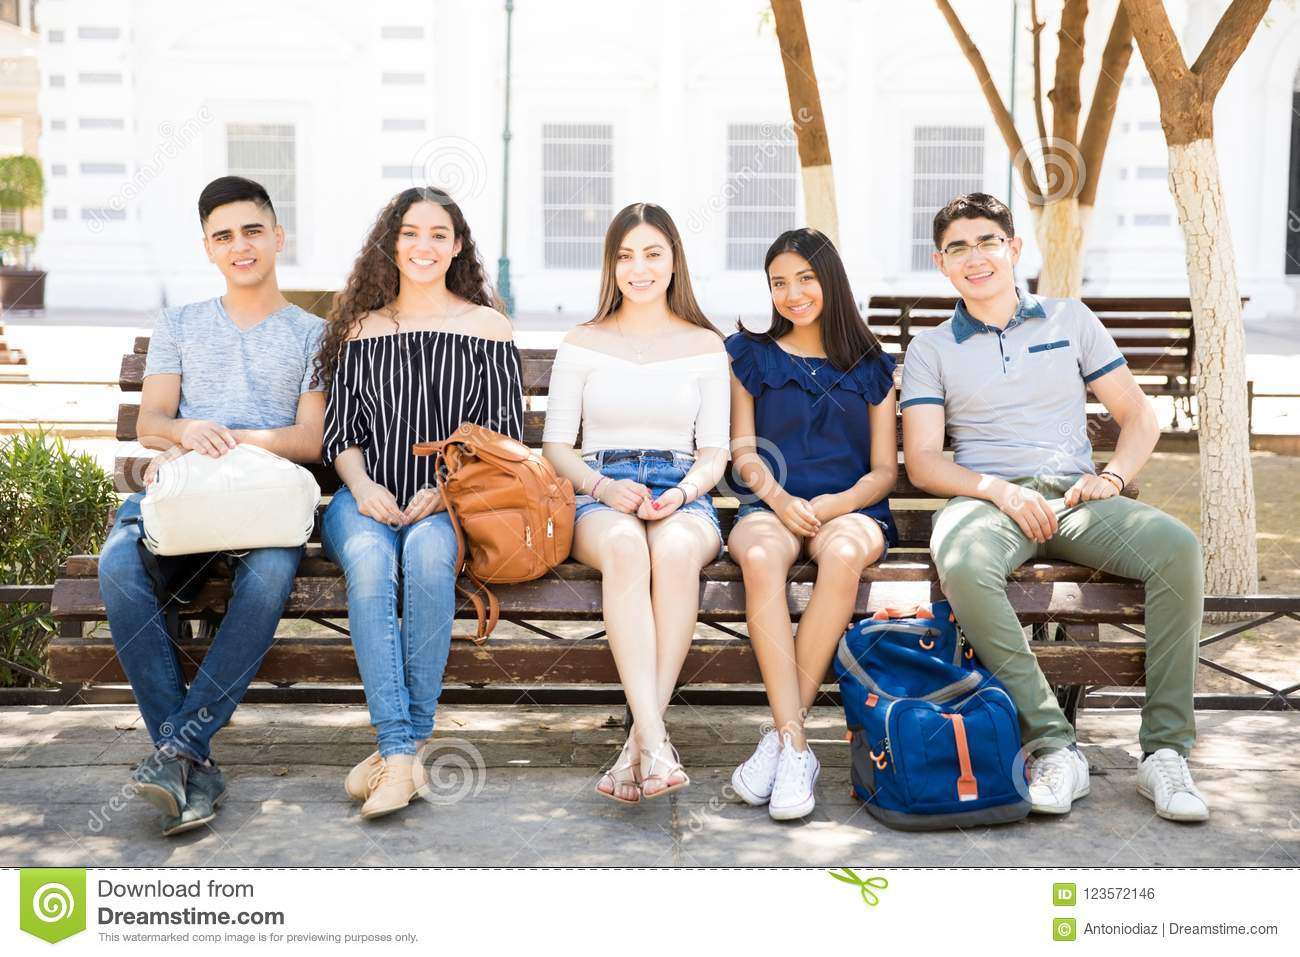 15b19dcfdf1 Portrait of happy teenage boys and girls sitting on a bench outdoor with backpacks  looking at camera and smiling